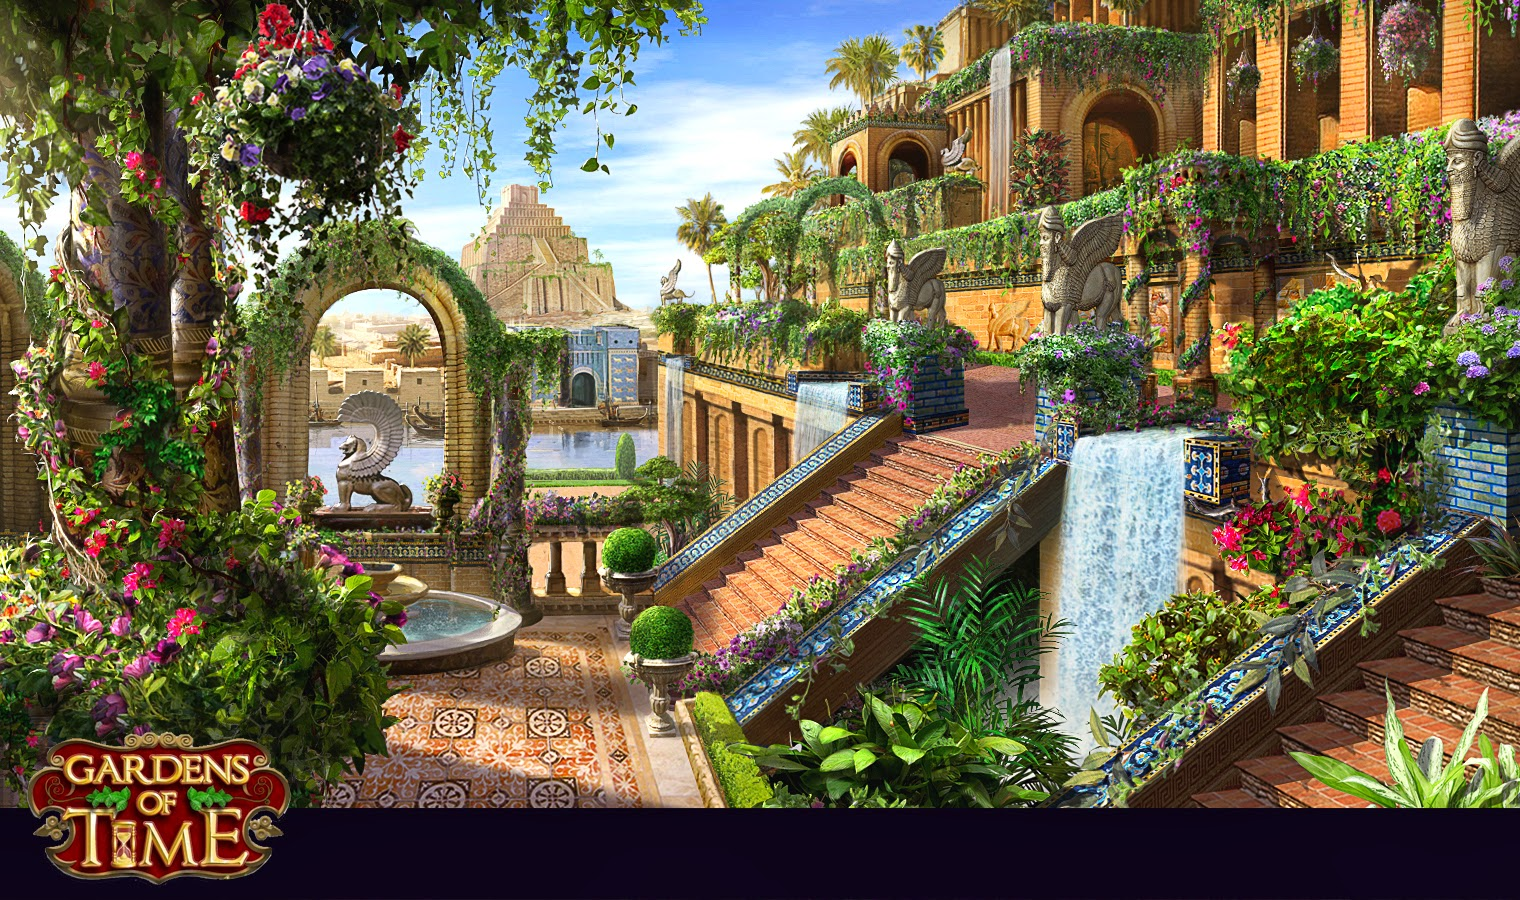 the hanging gardens of babylon Looking for the hanging gardens of babylon find out information about the hanging gardens of babylon see babylon babylon , ancient city of mesopotamia one of the most important cities of.